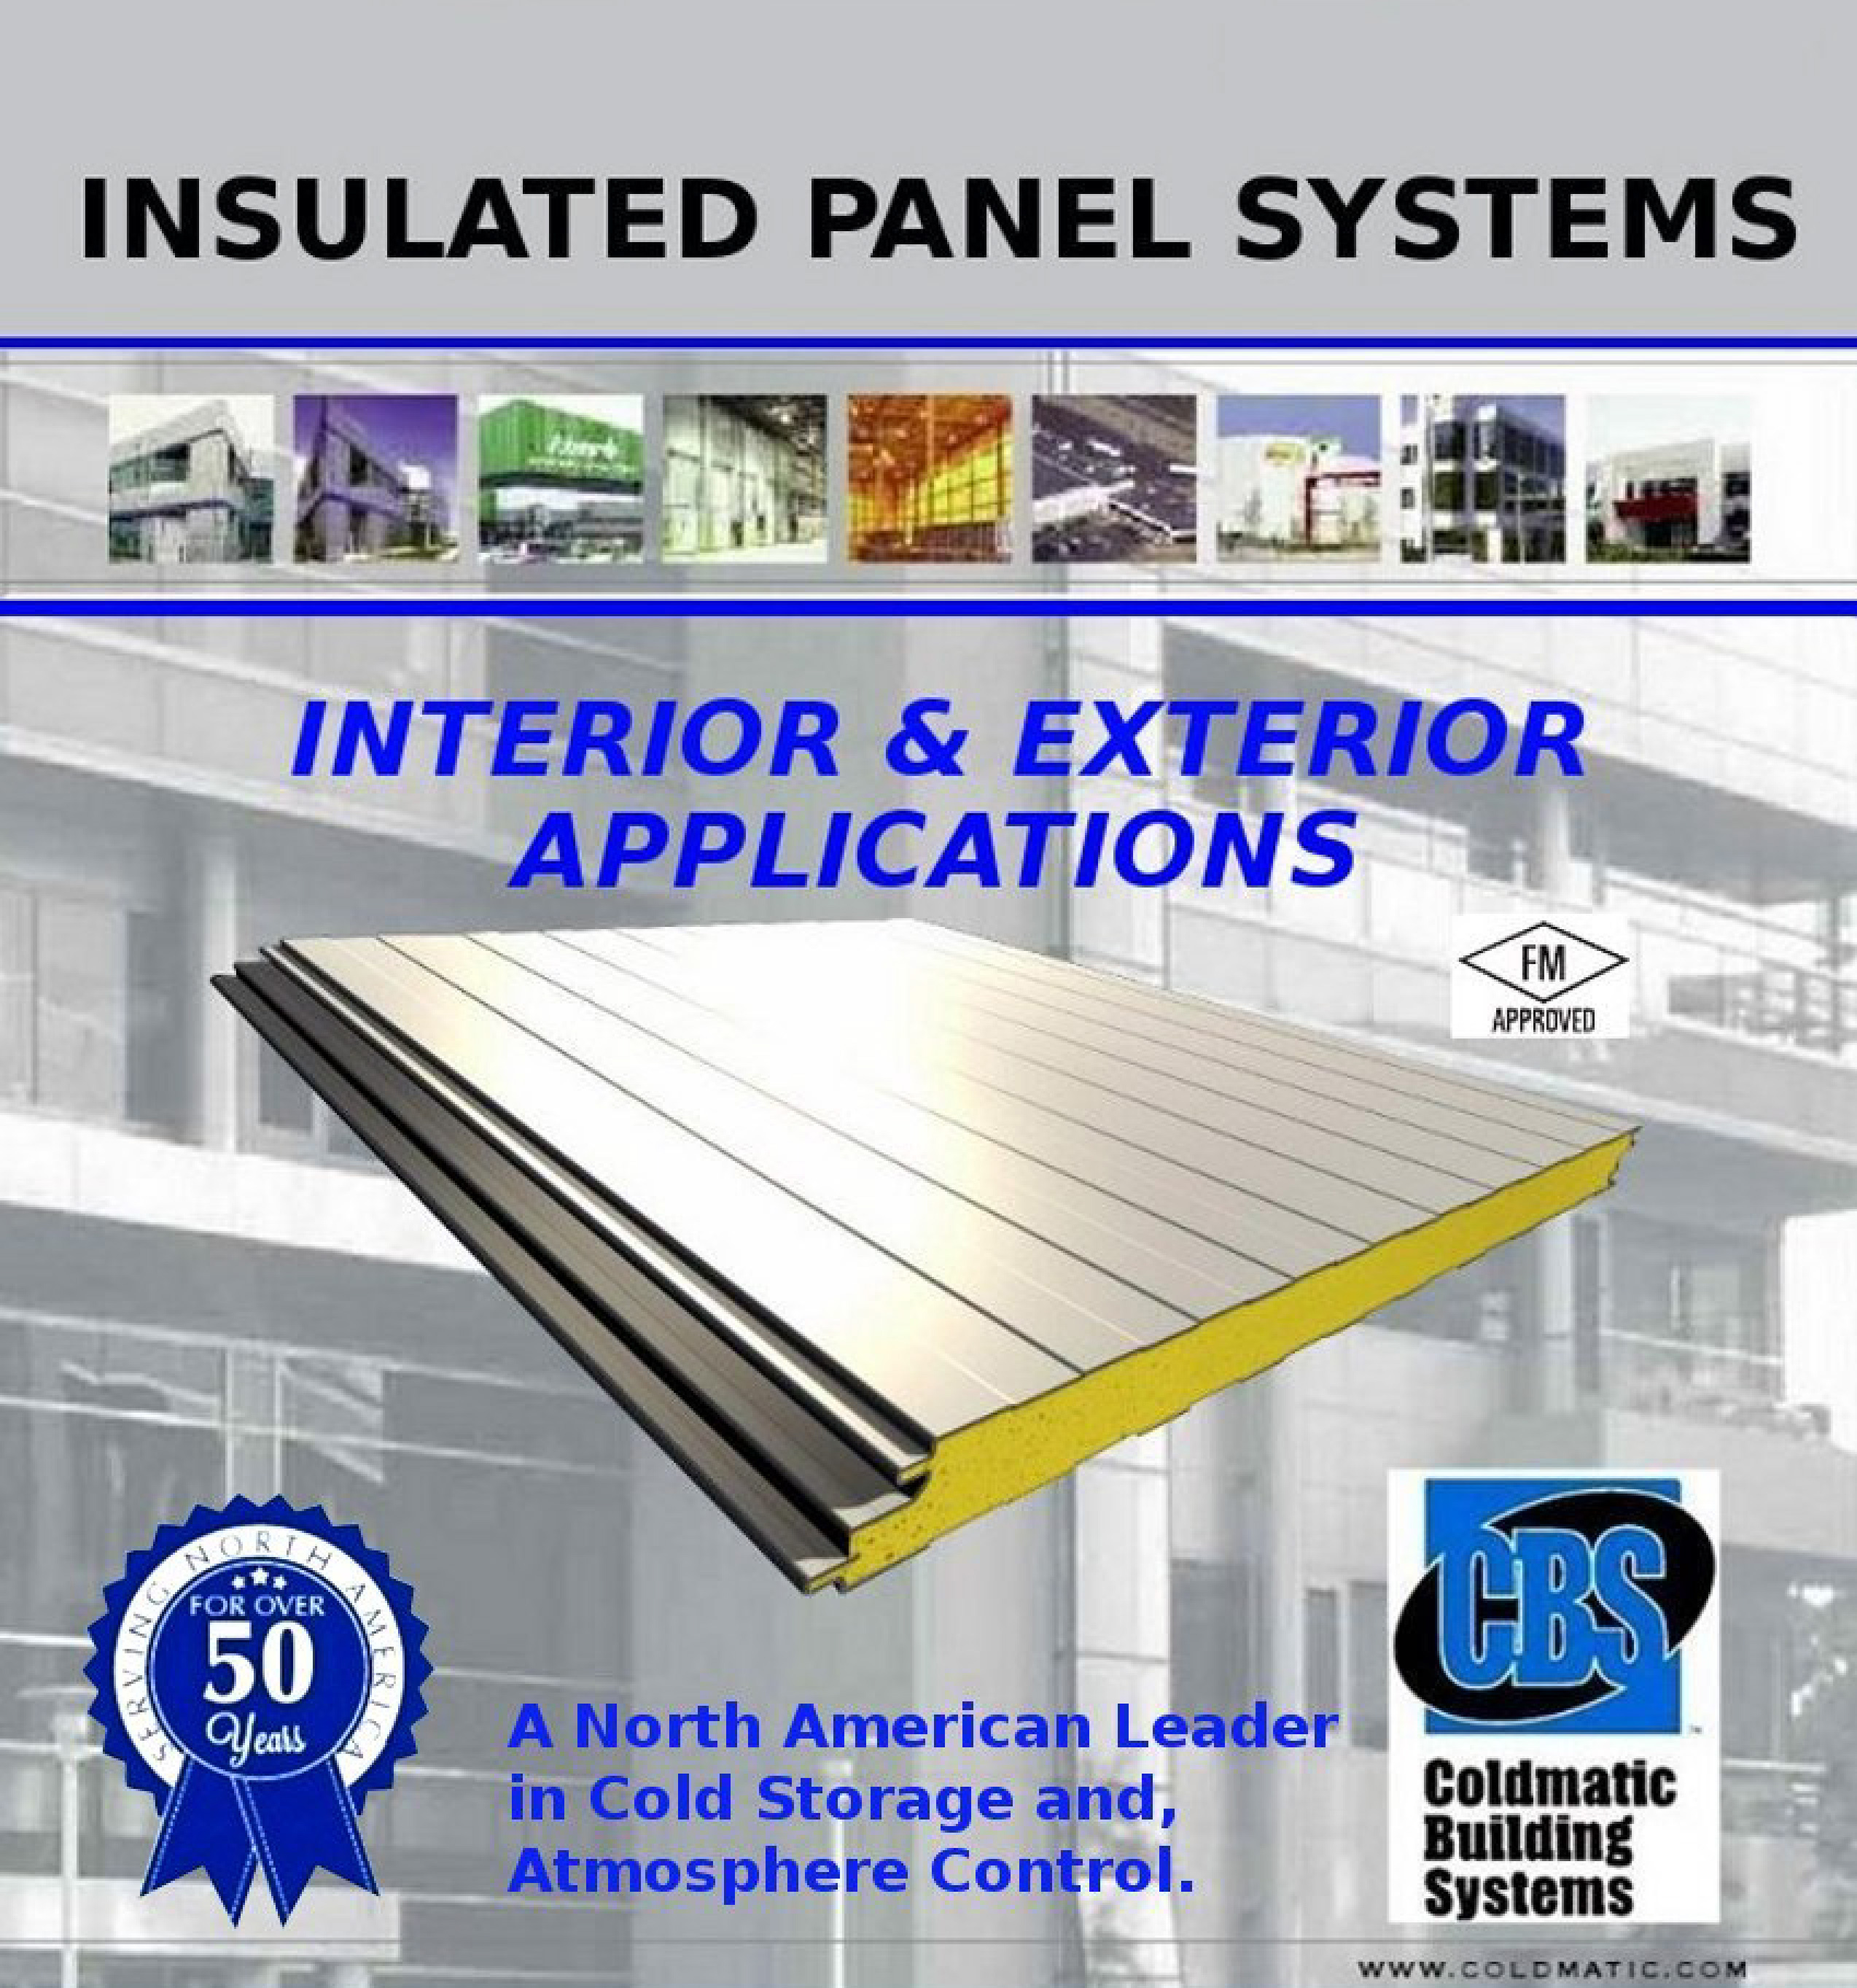 Interior & Exterior Applications